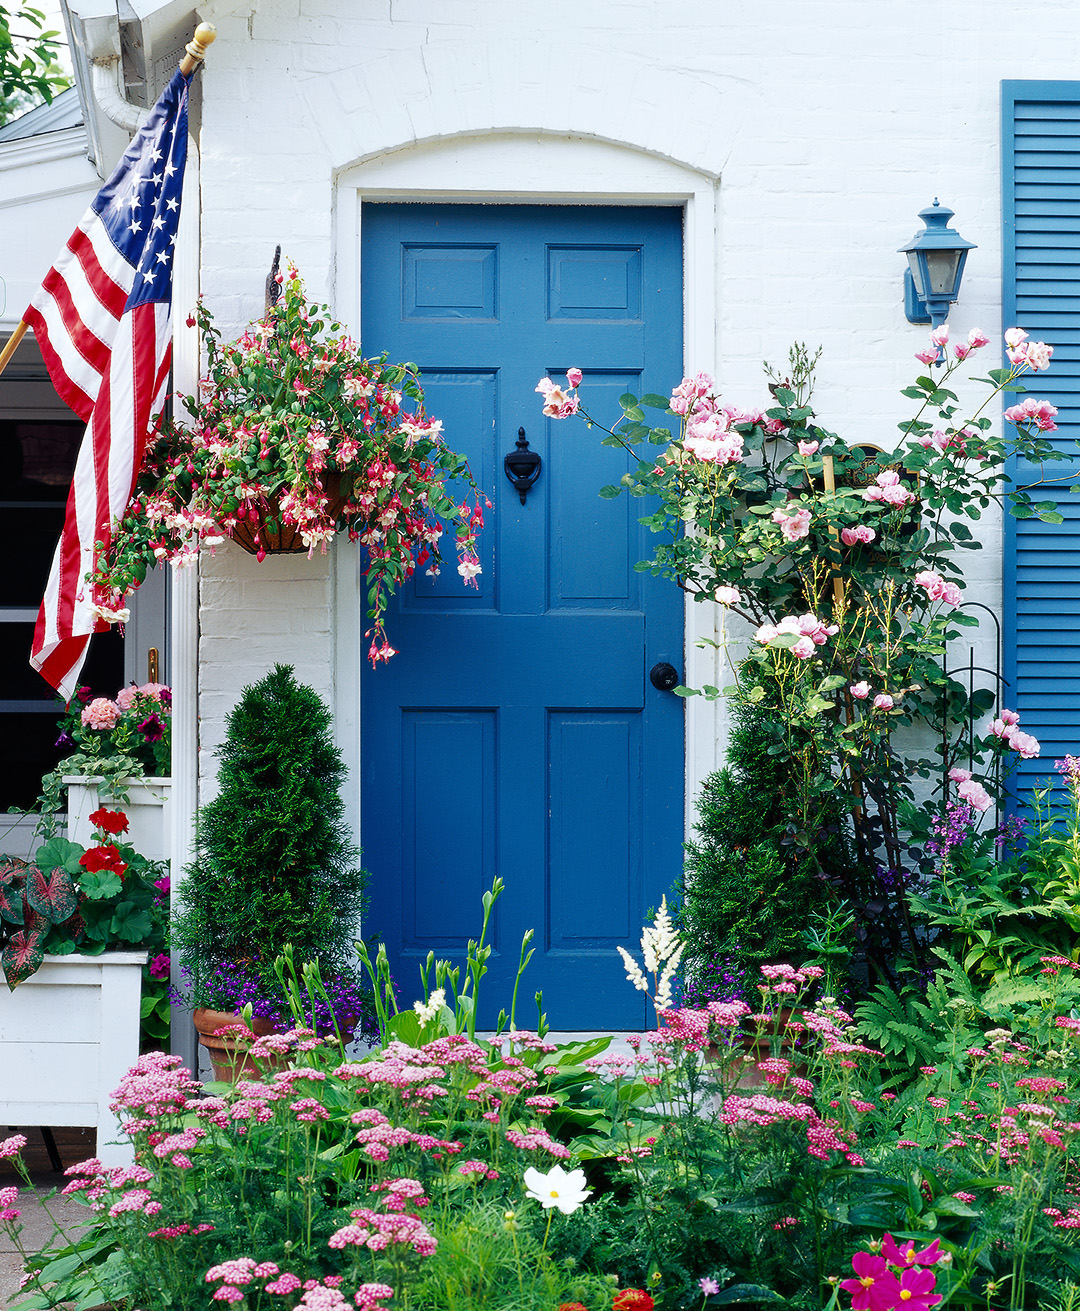 door yard garden blue door flag green flowers close up